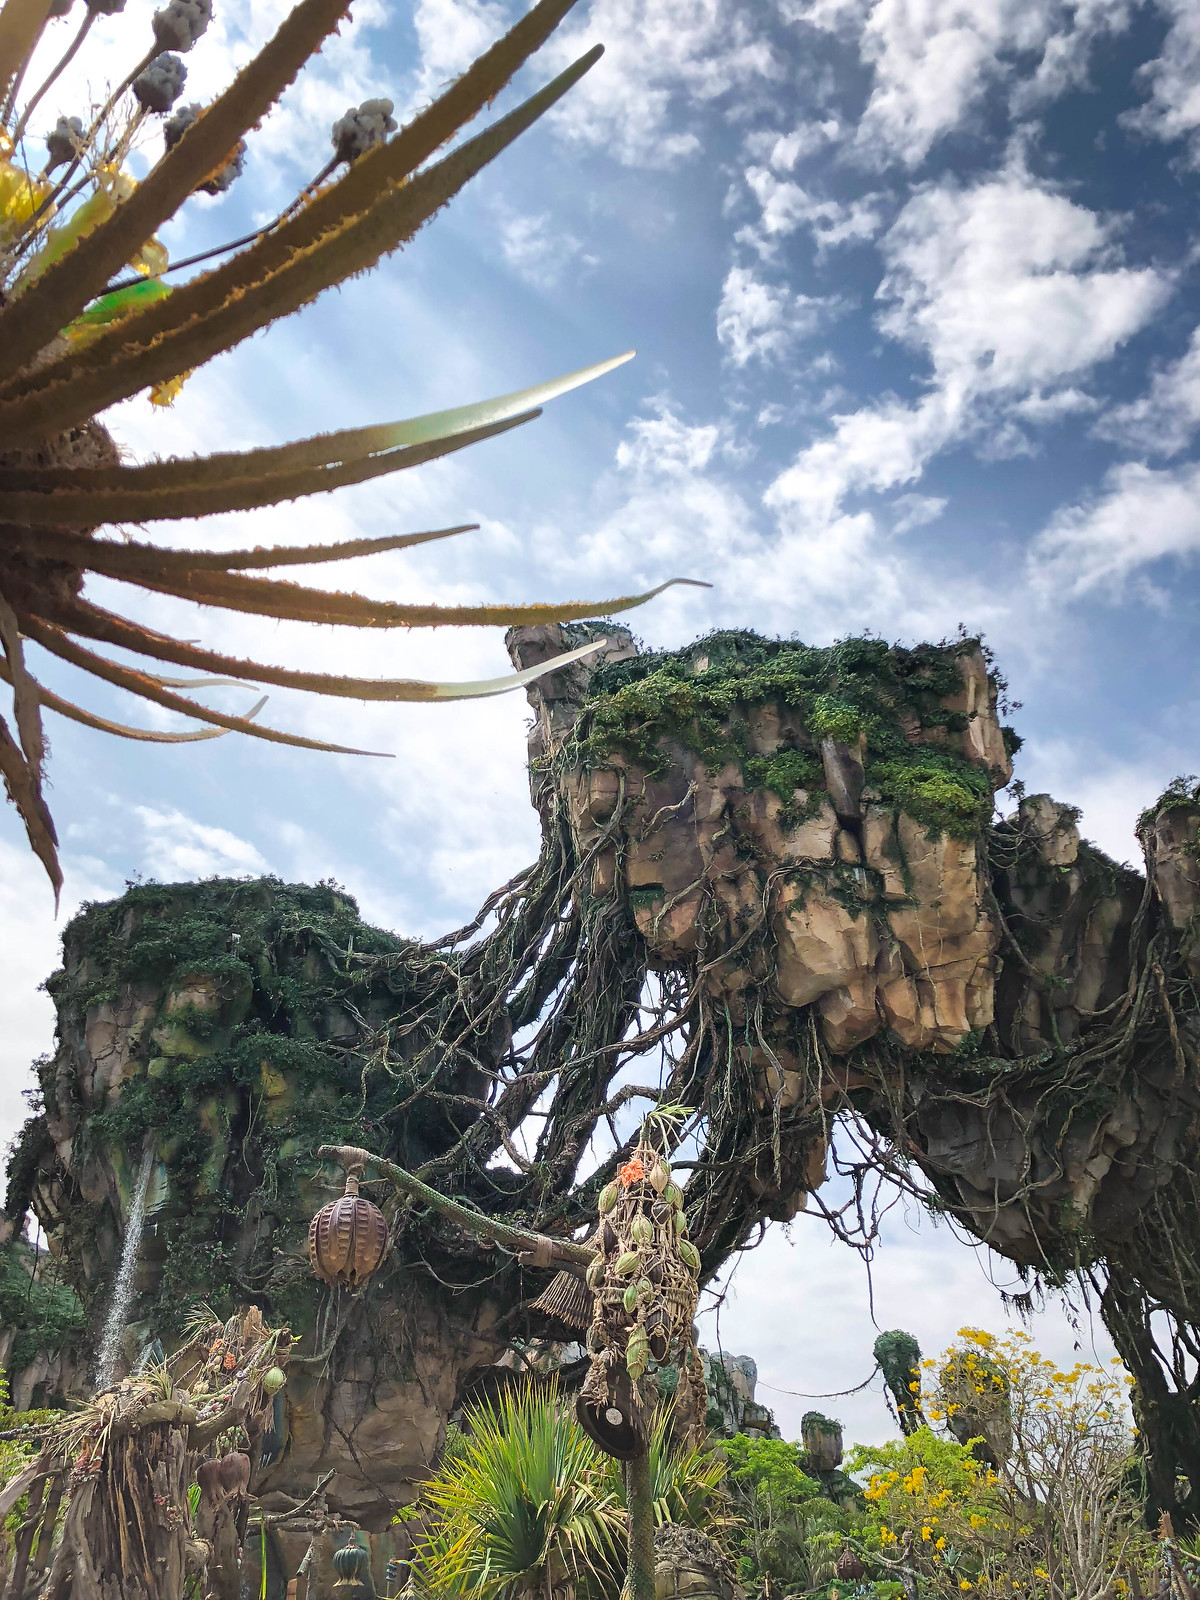 Pandora The World of Avatar Animal Kingdom Walt Disney World